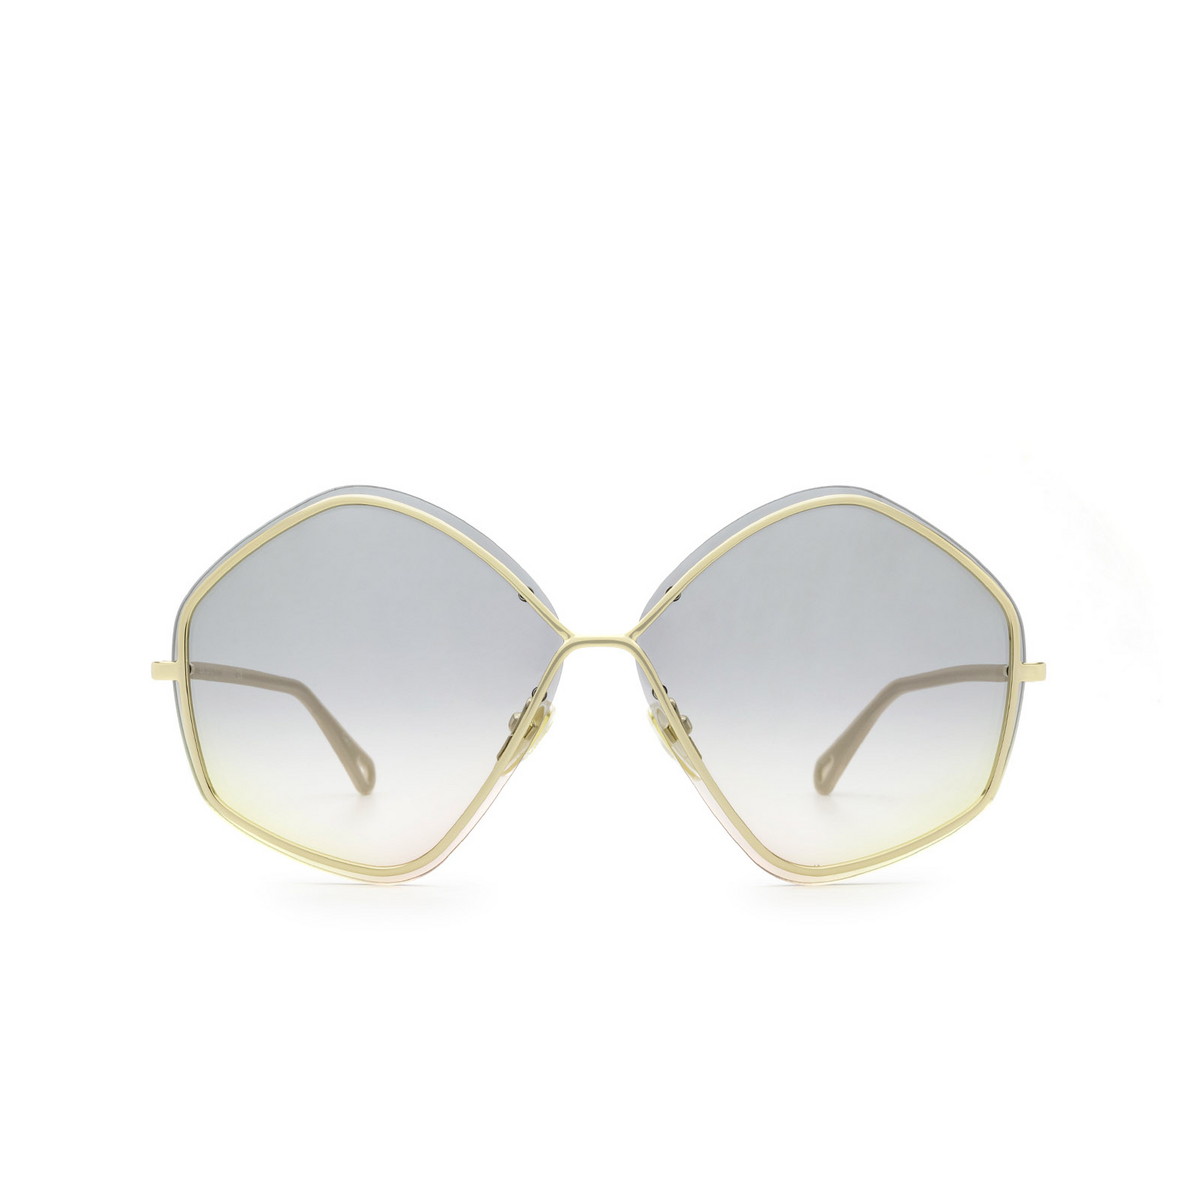 Chloé® Irregular Sunglasses: CH0065S color Gold 001 - front view.